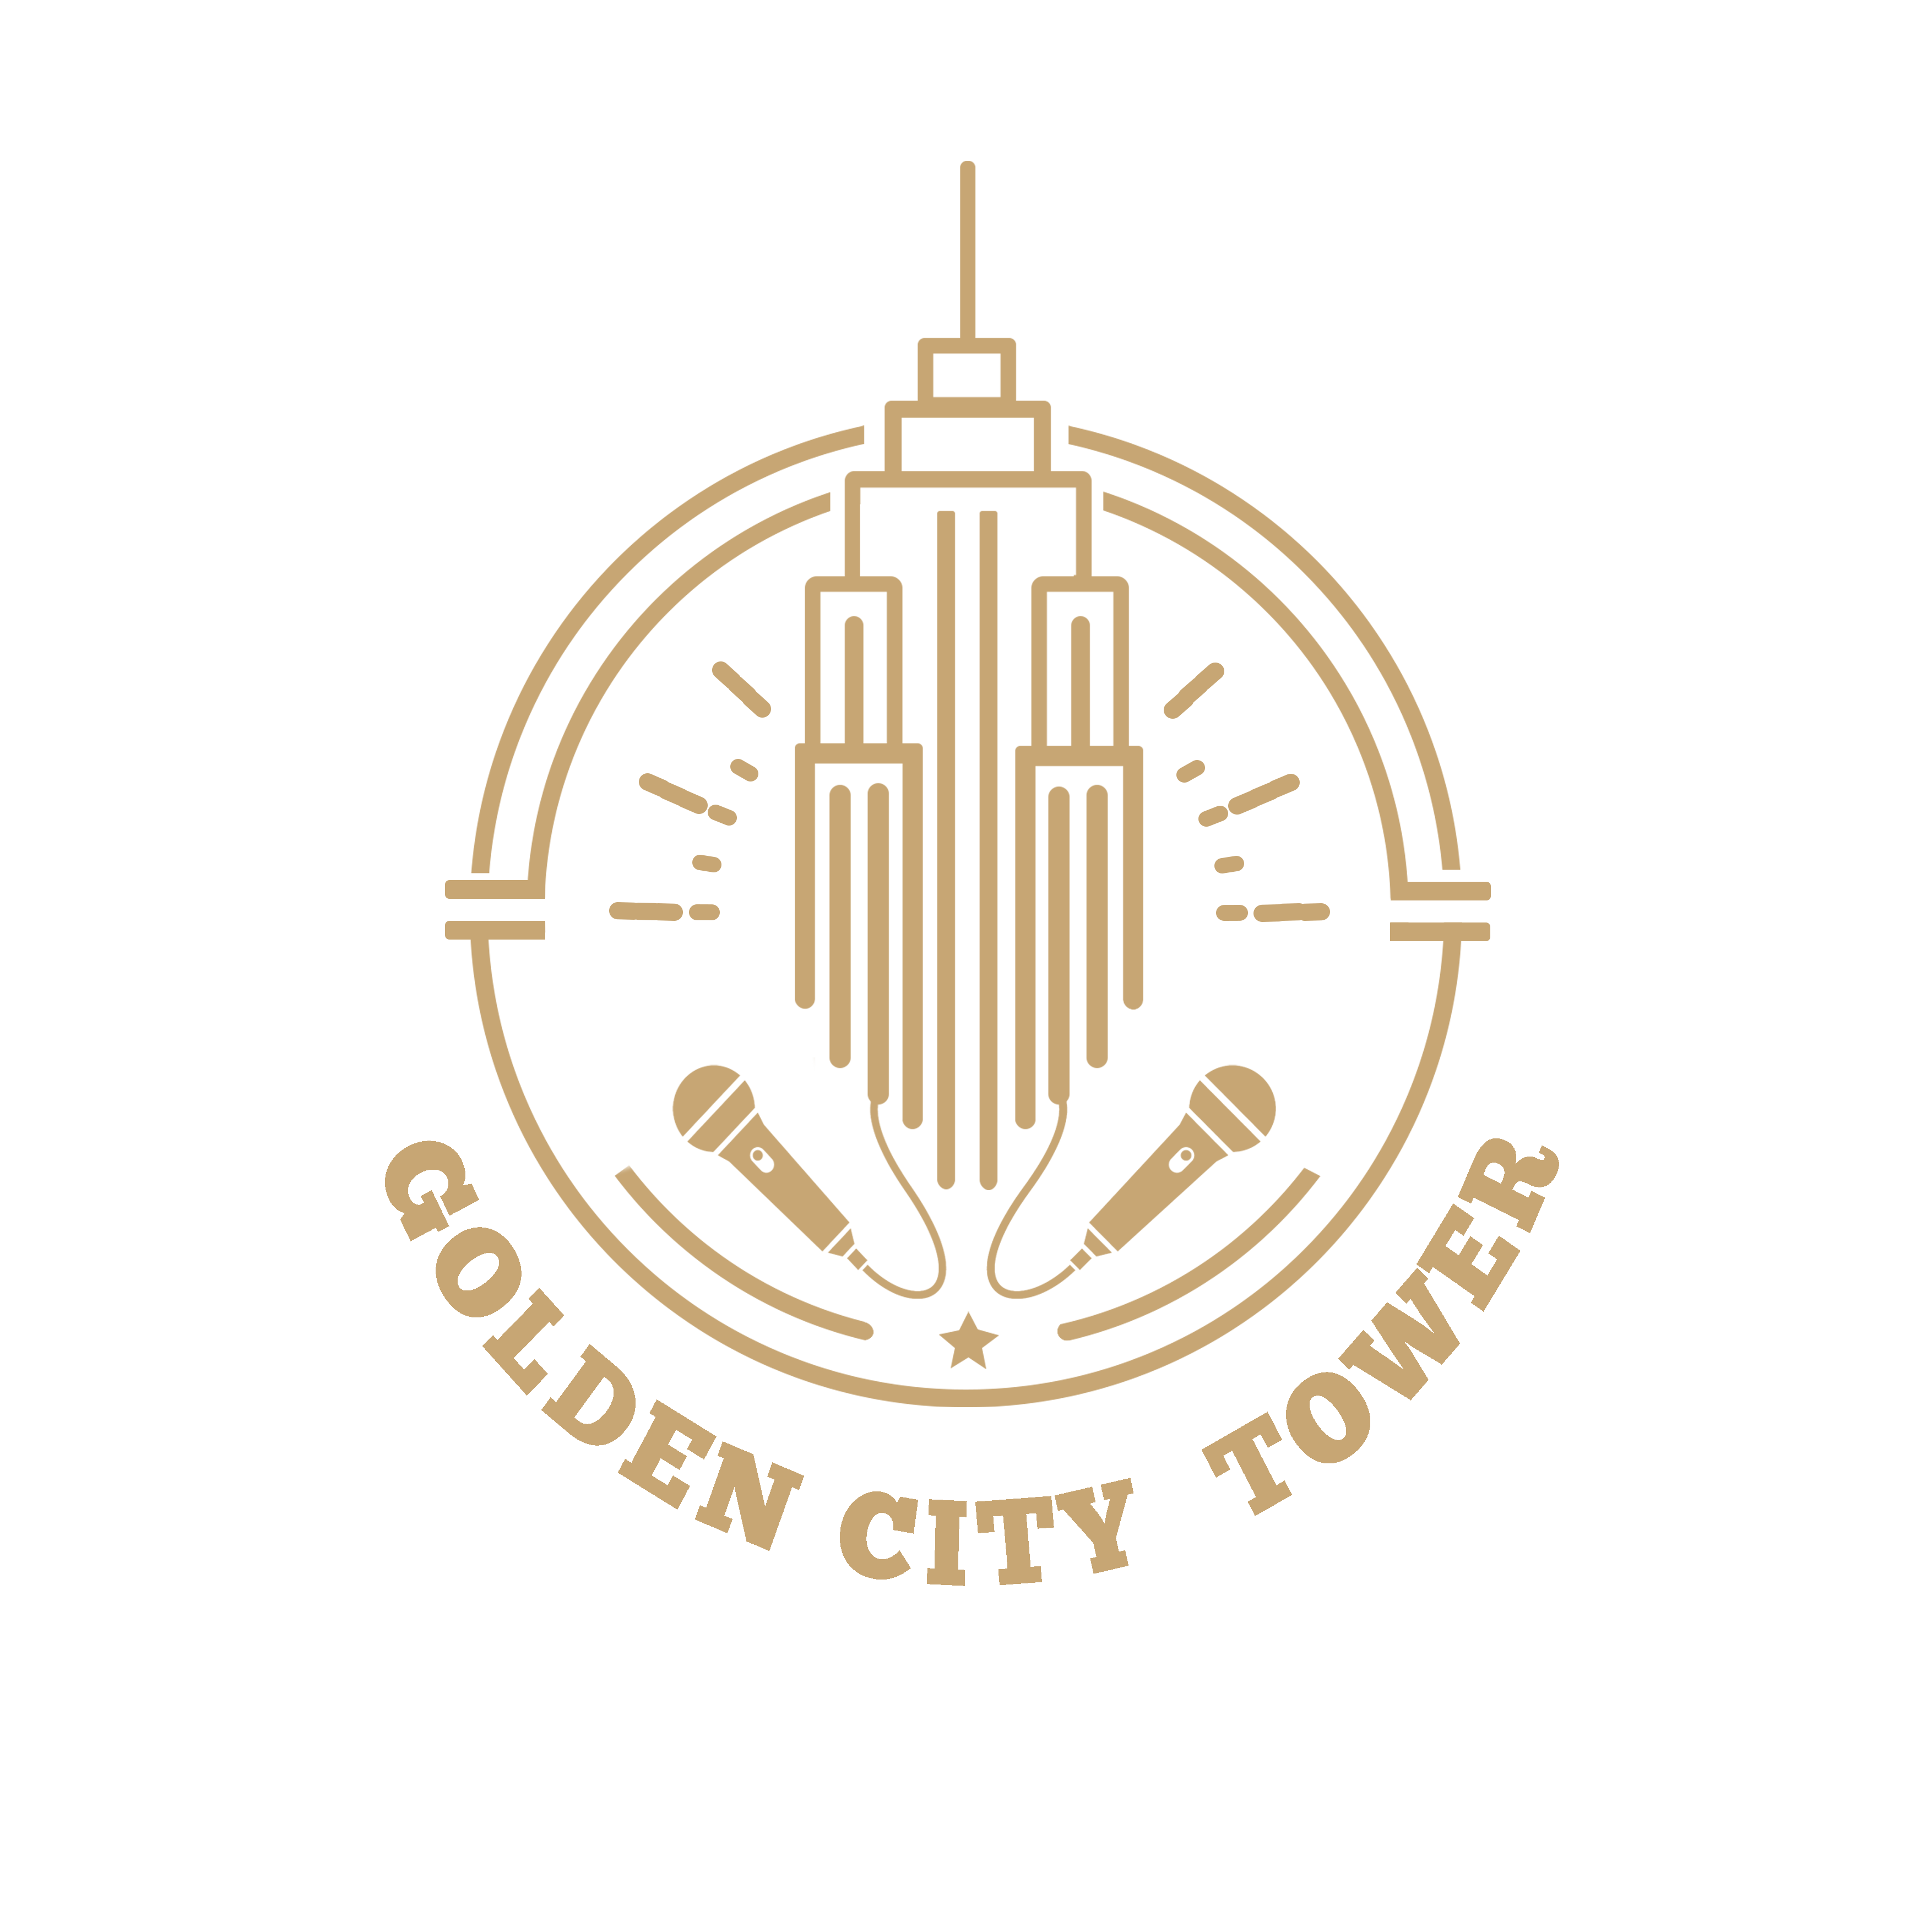 Golden City Tower